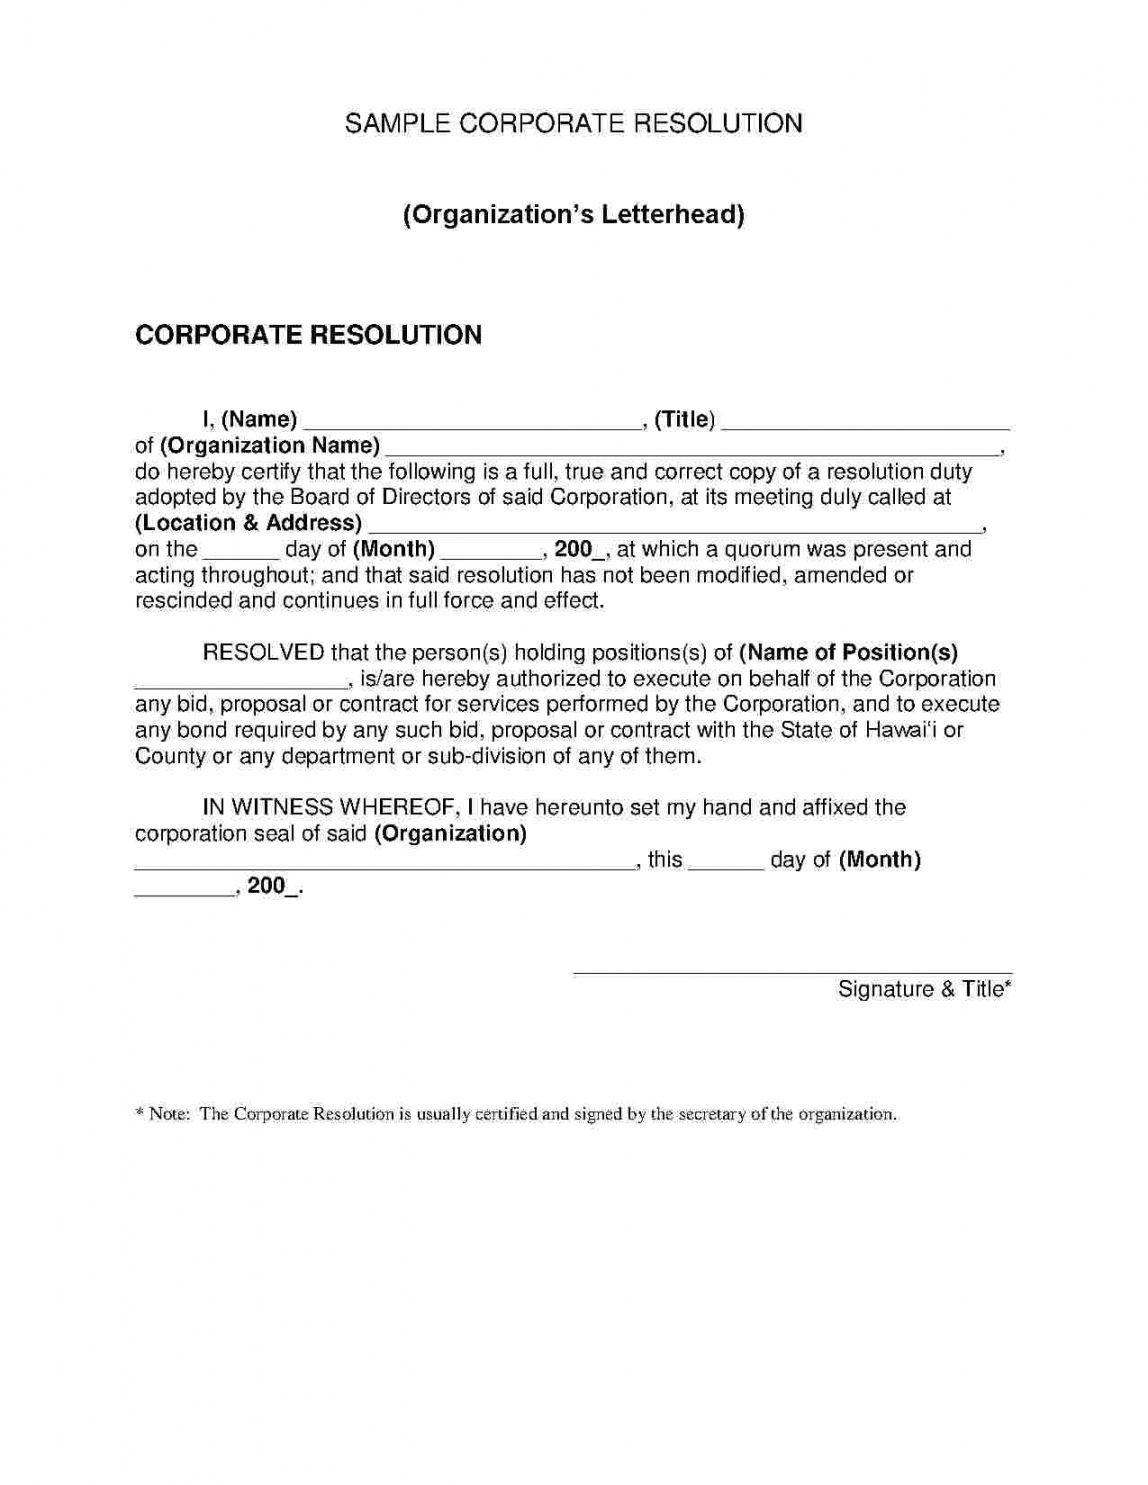 Explore Our Image Of Certificate Of Corporate Resolution Template Organisation Name Corporate Personalized Awards